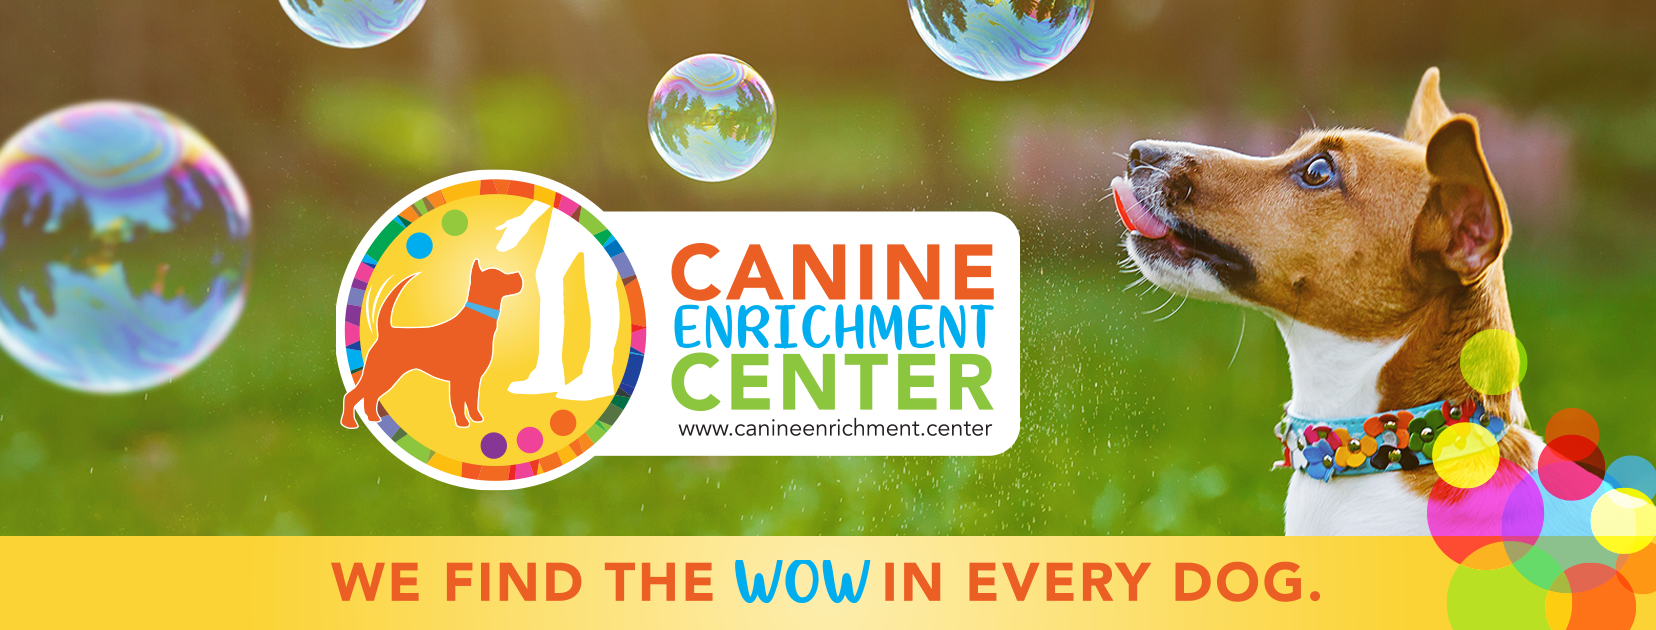 Welcome to Canine Enrichment Center | Wisconsin